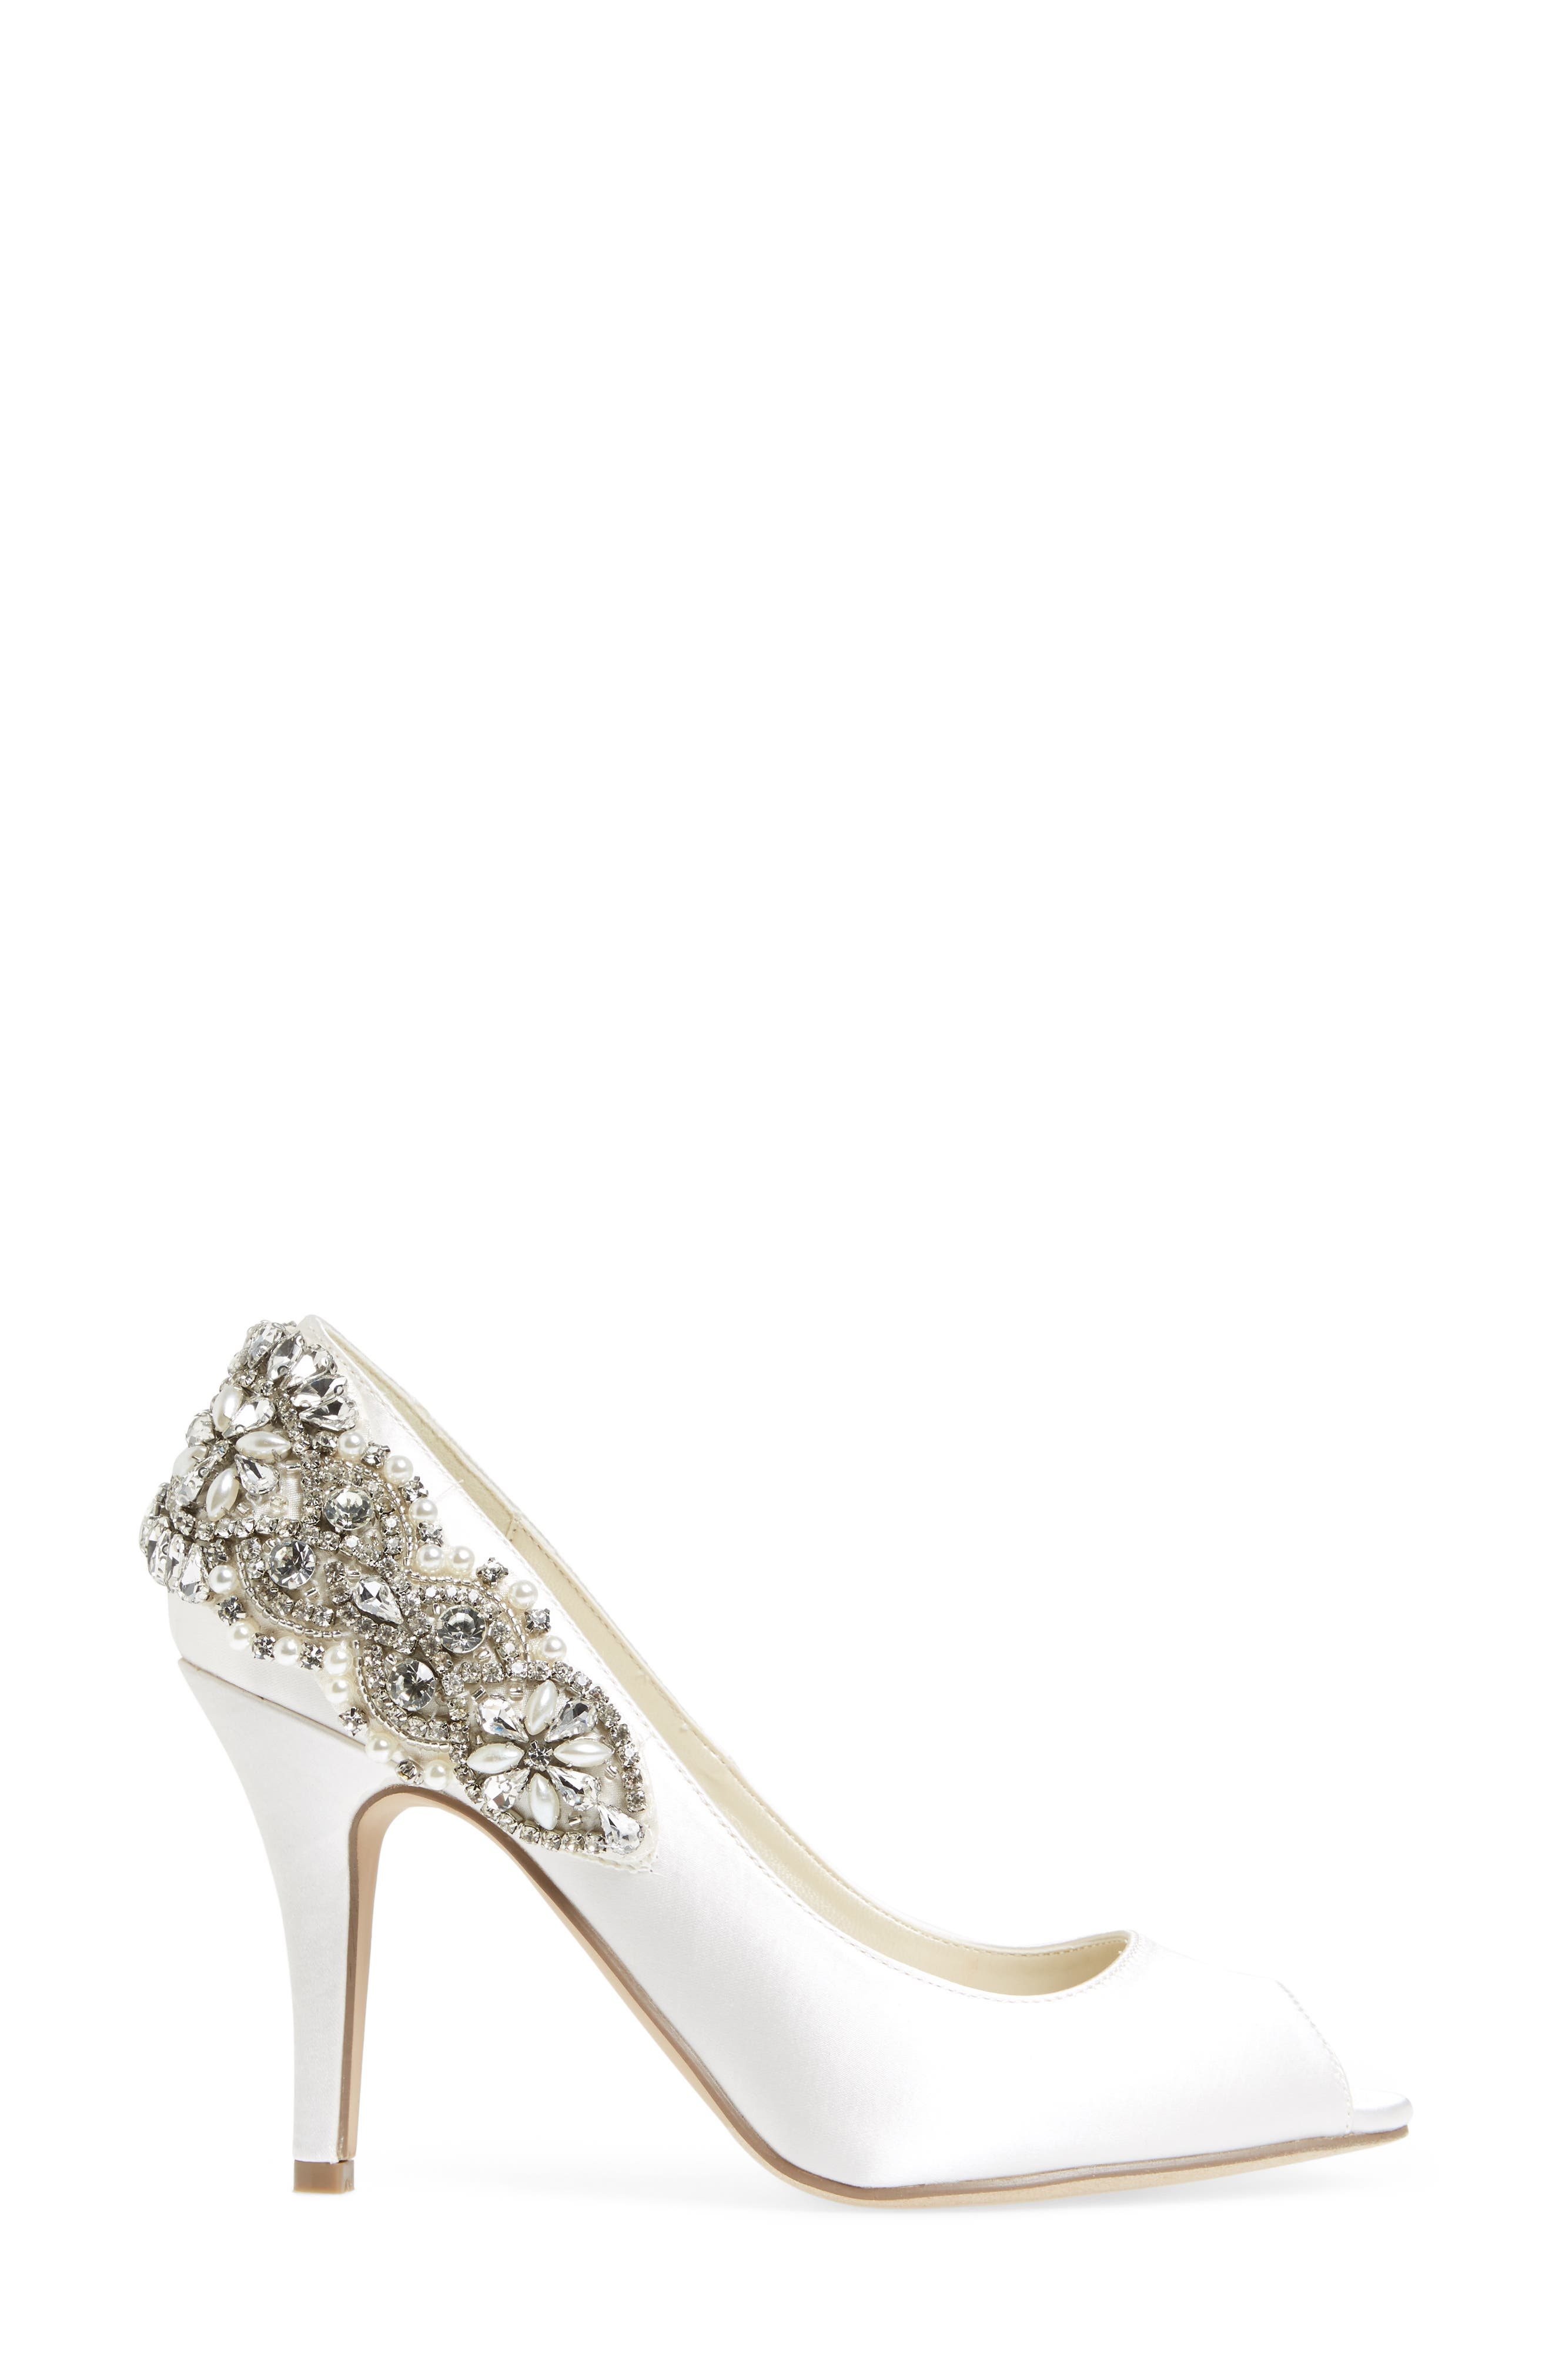 Cynthia Embellished Pump,                             Alternate thumbnail 3, color,                             IVORY SATIN